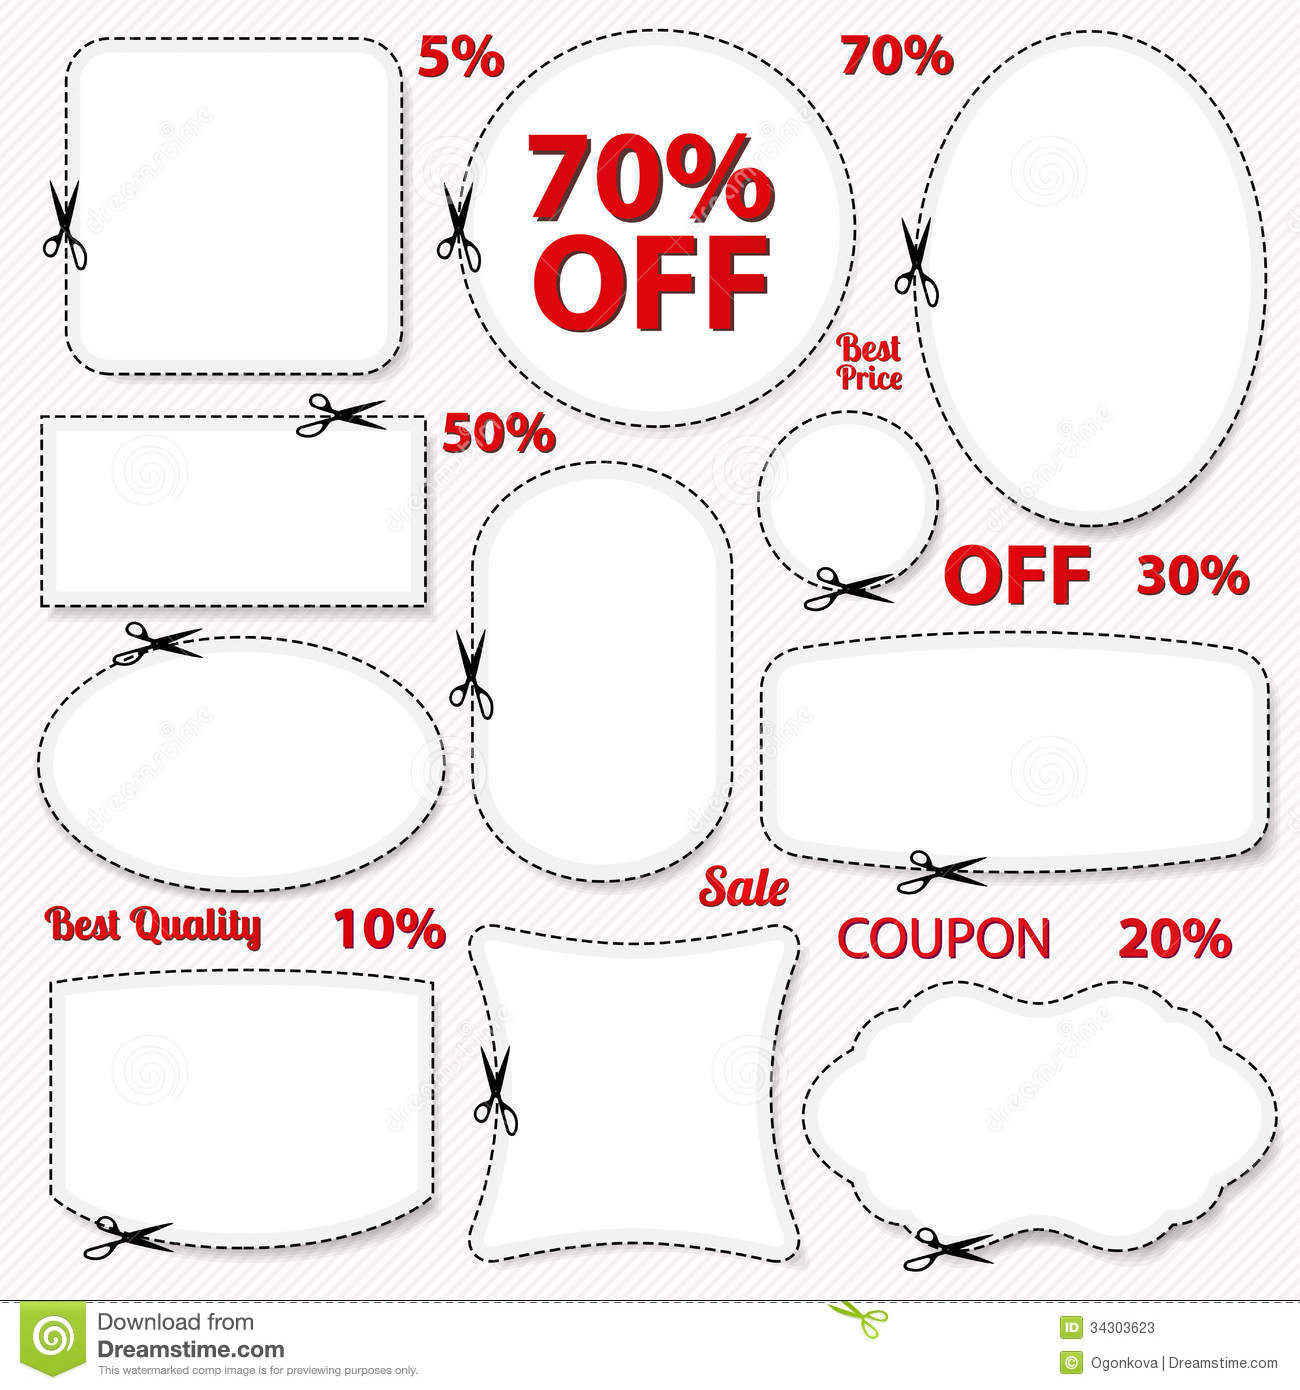 doc coupon layout coupon layout sample coupon template coupon layout sample coupon template 27 documents in psd vector coupon layout